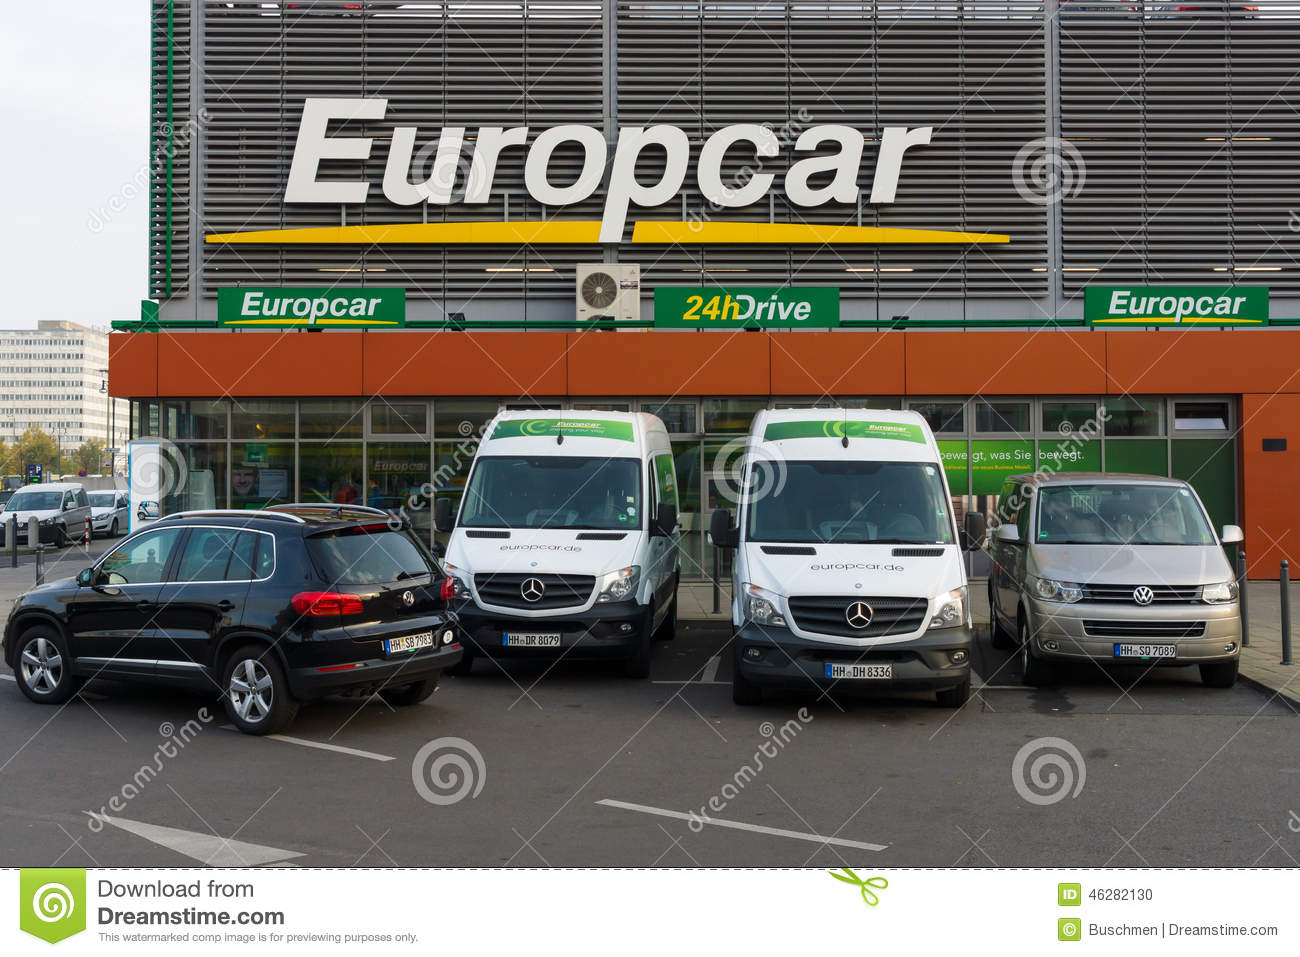 europcar est une soci t de location de voiture poss d e par eurazeo image ditorial image. Black Bedroom Furniture Sets. Home Design Ideas